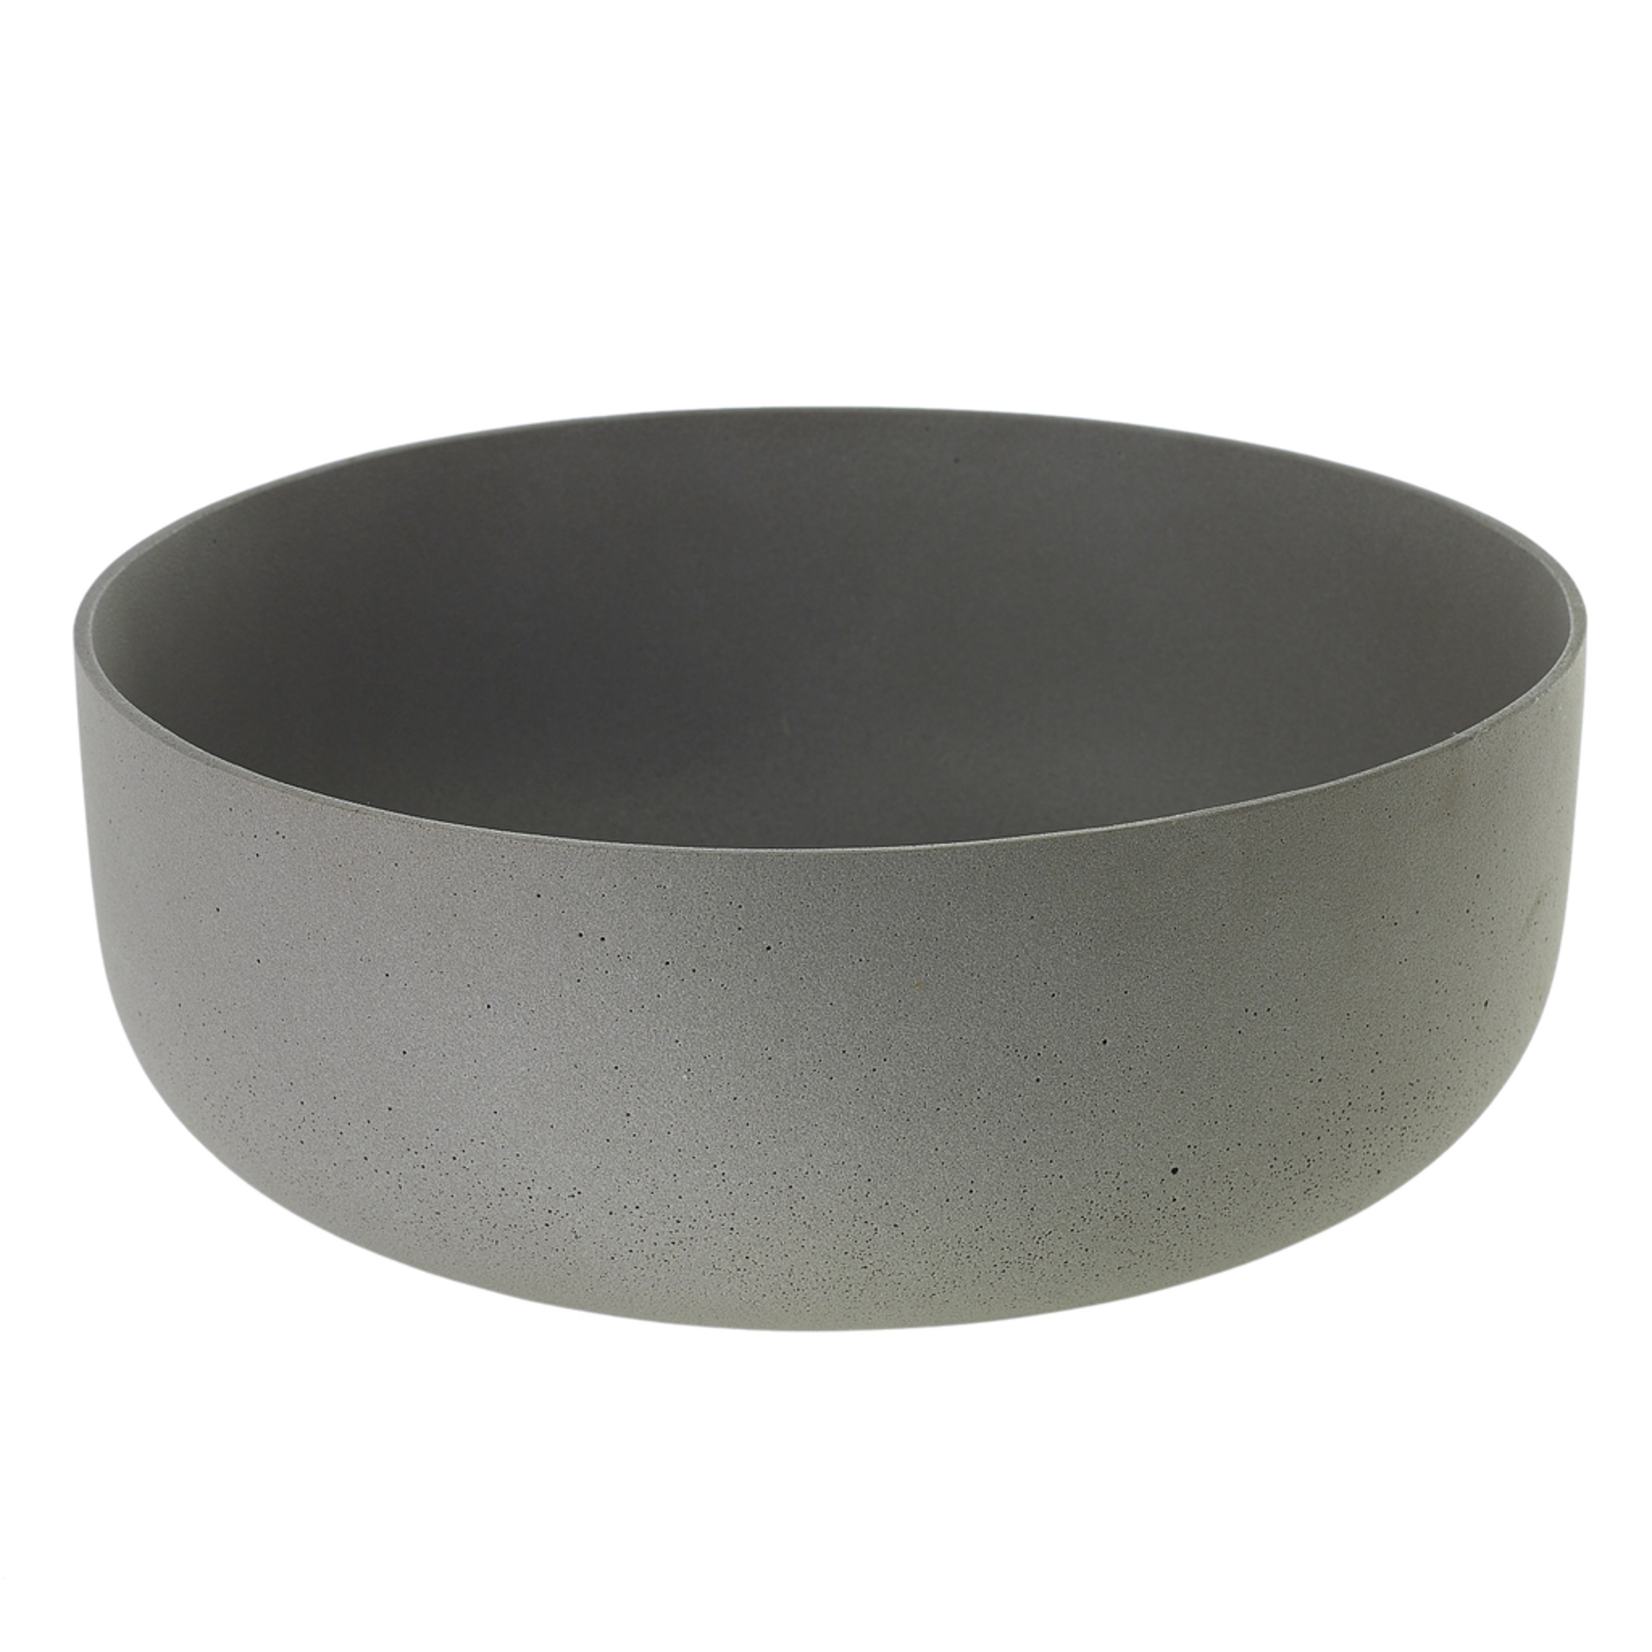 """14""""x 5.5""""H PACE BOWL (AD)"""